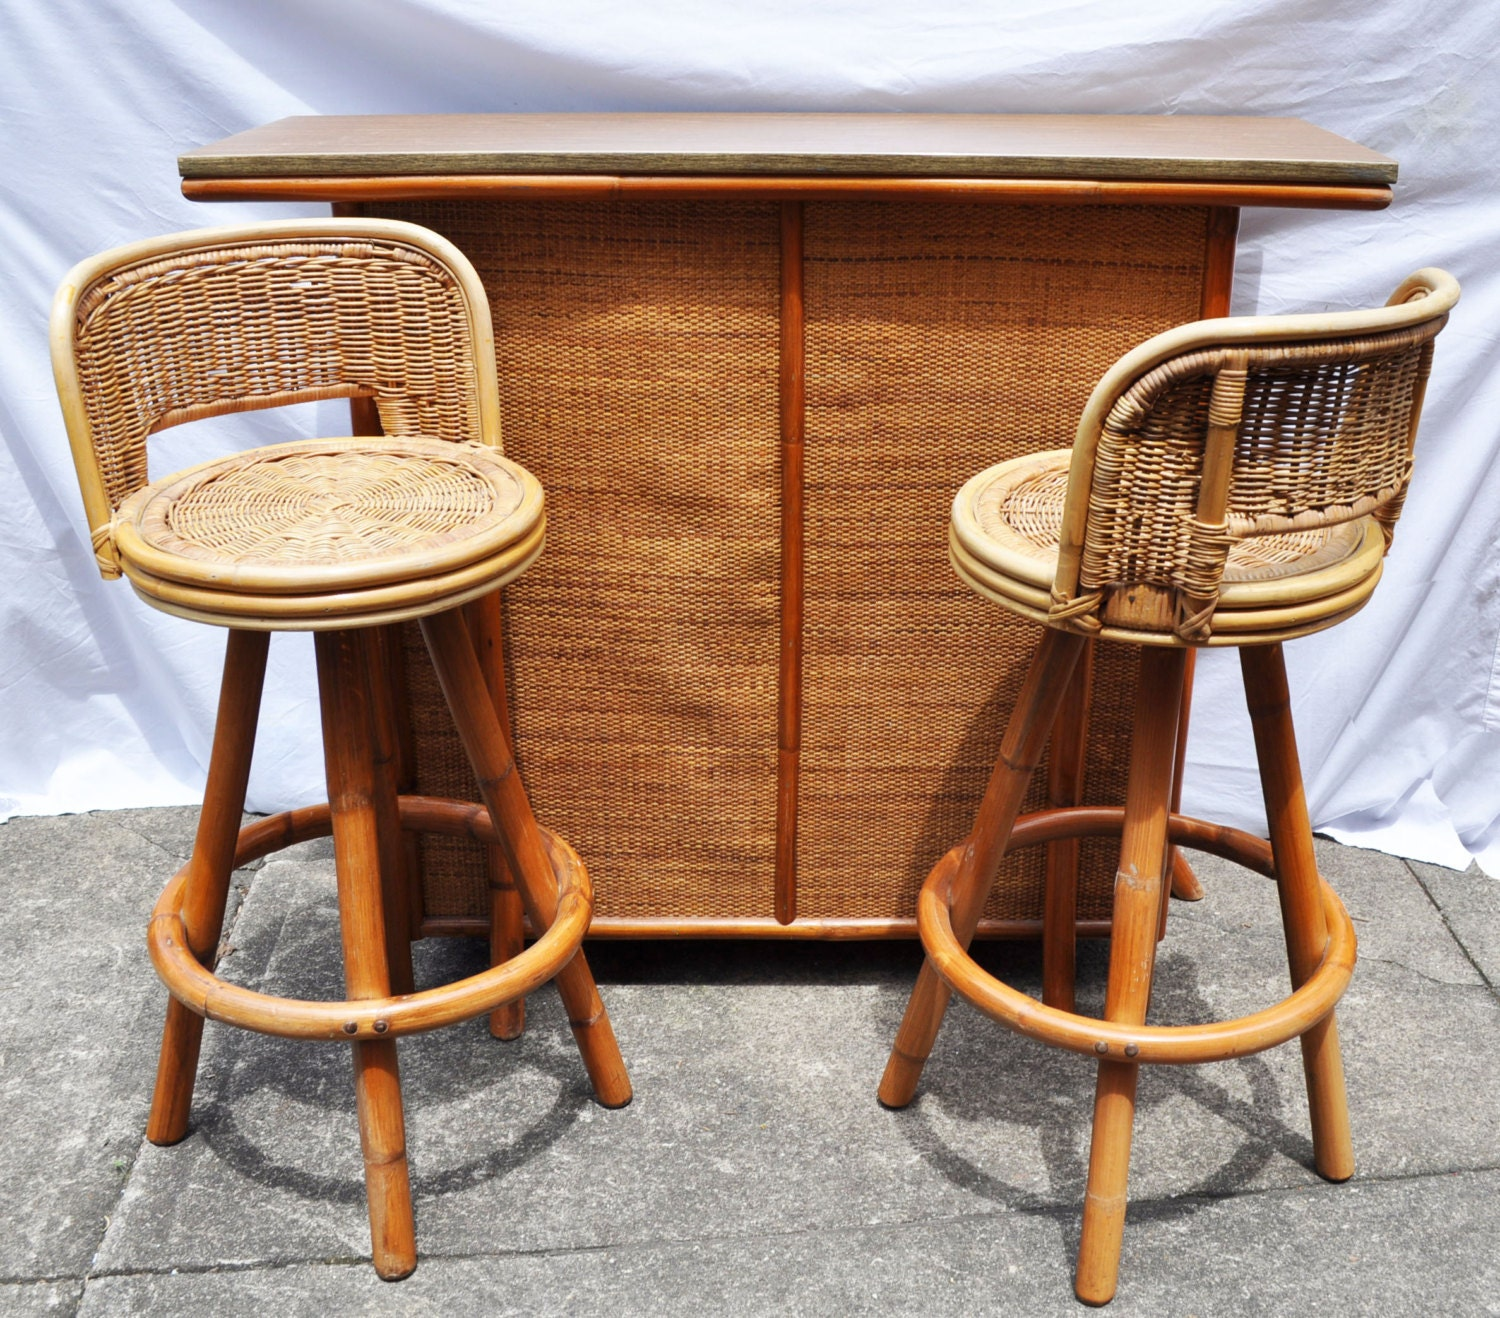 Vintage Tiki Bar And Swivel Stools Bamboo Rattan Wicker By